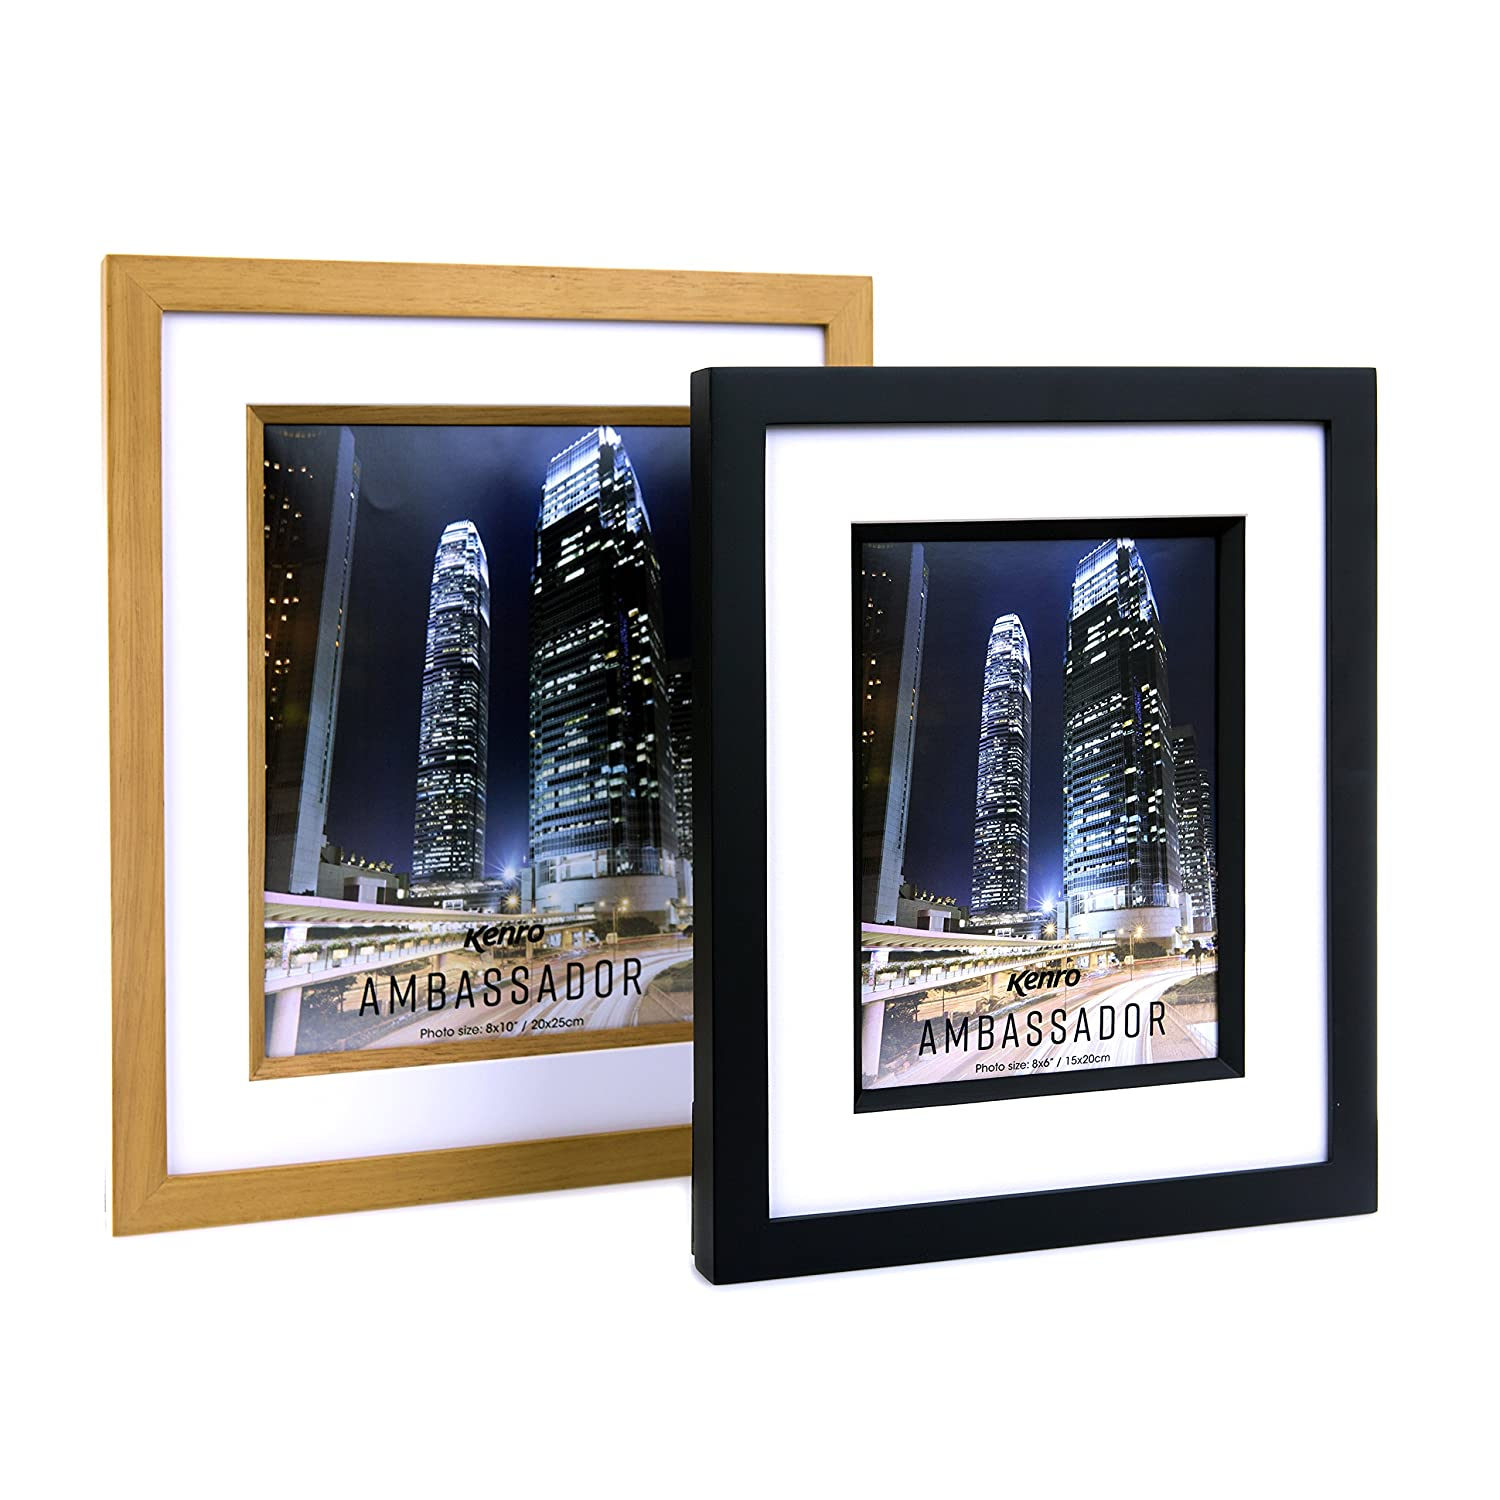 Ambassador Series Gallery Wall Collage Minimal Interior AM3N Kenro Modern Solid Natural Wood Photo Frame A3//42x29.7cm with White Bevel Mount Picture Frame